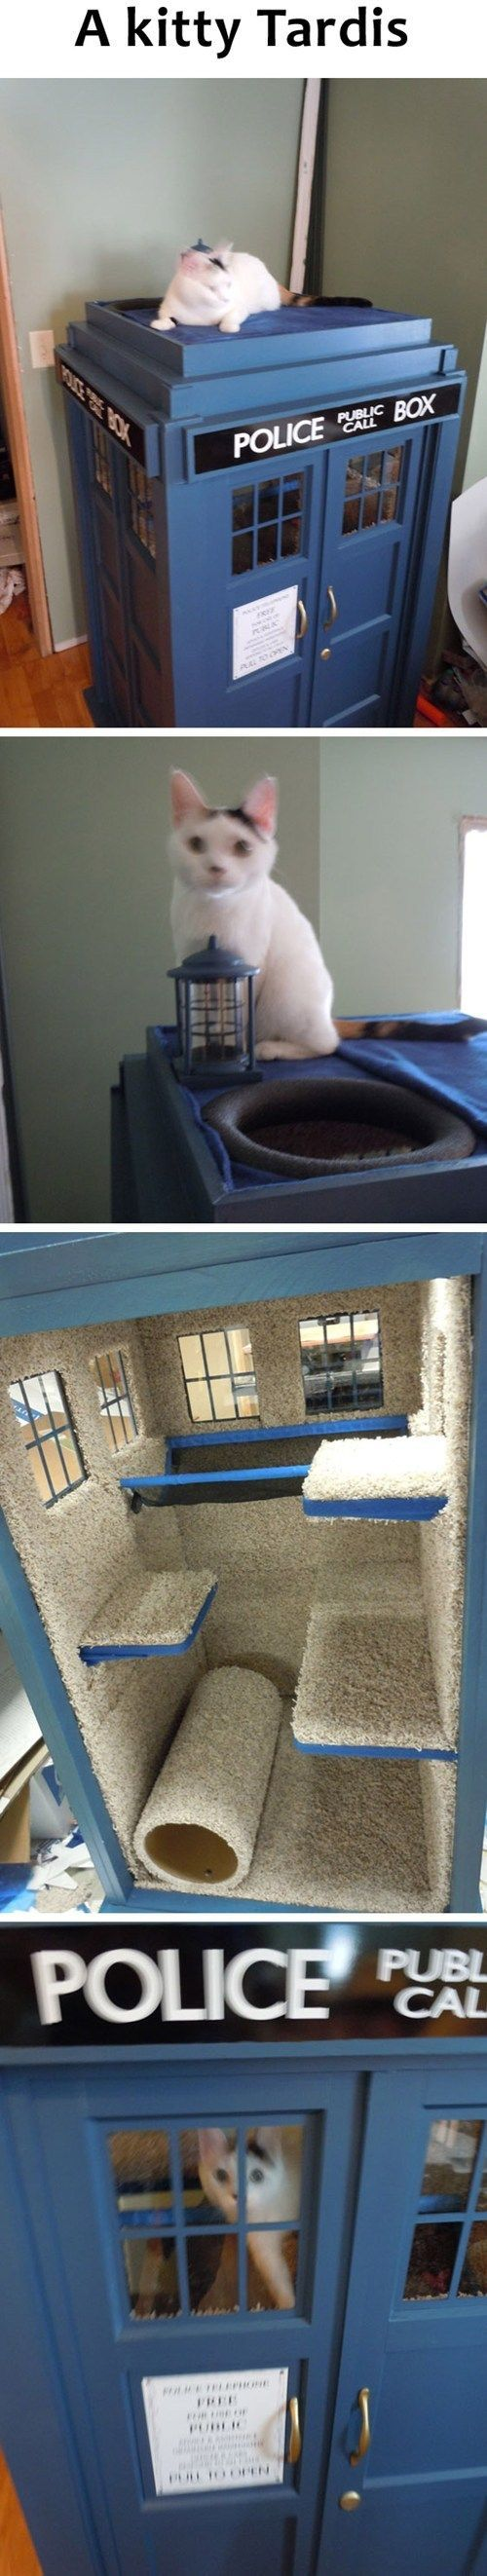 Kitty Tardis.  I must build this.